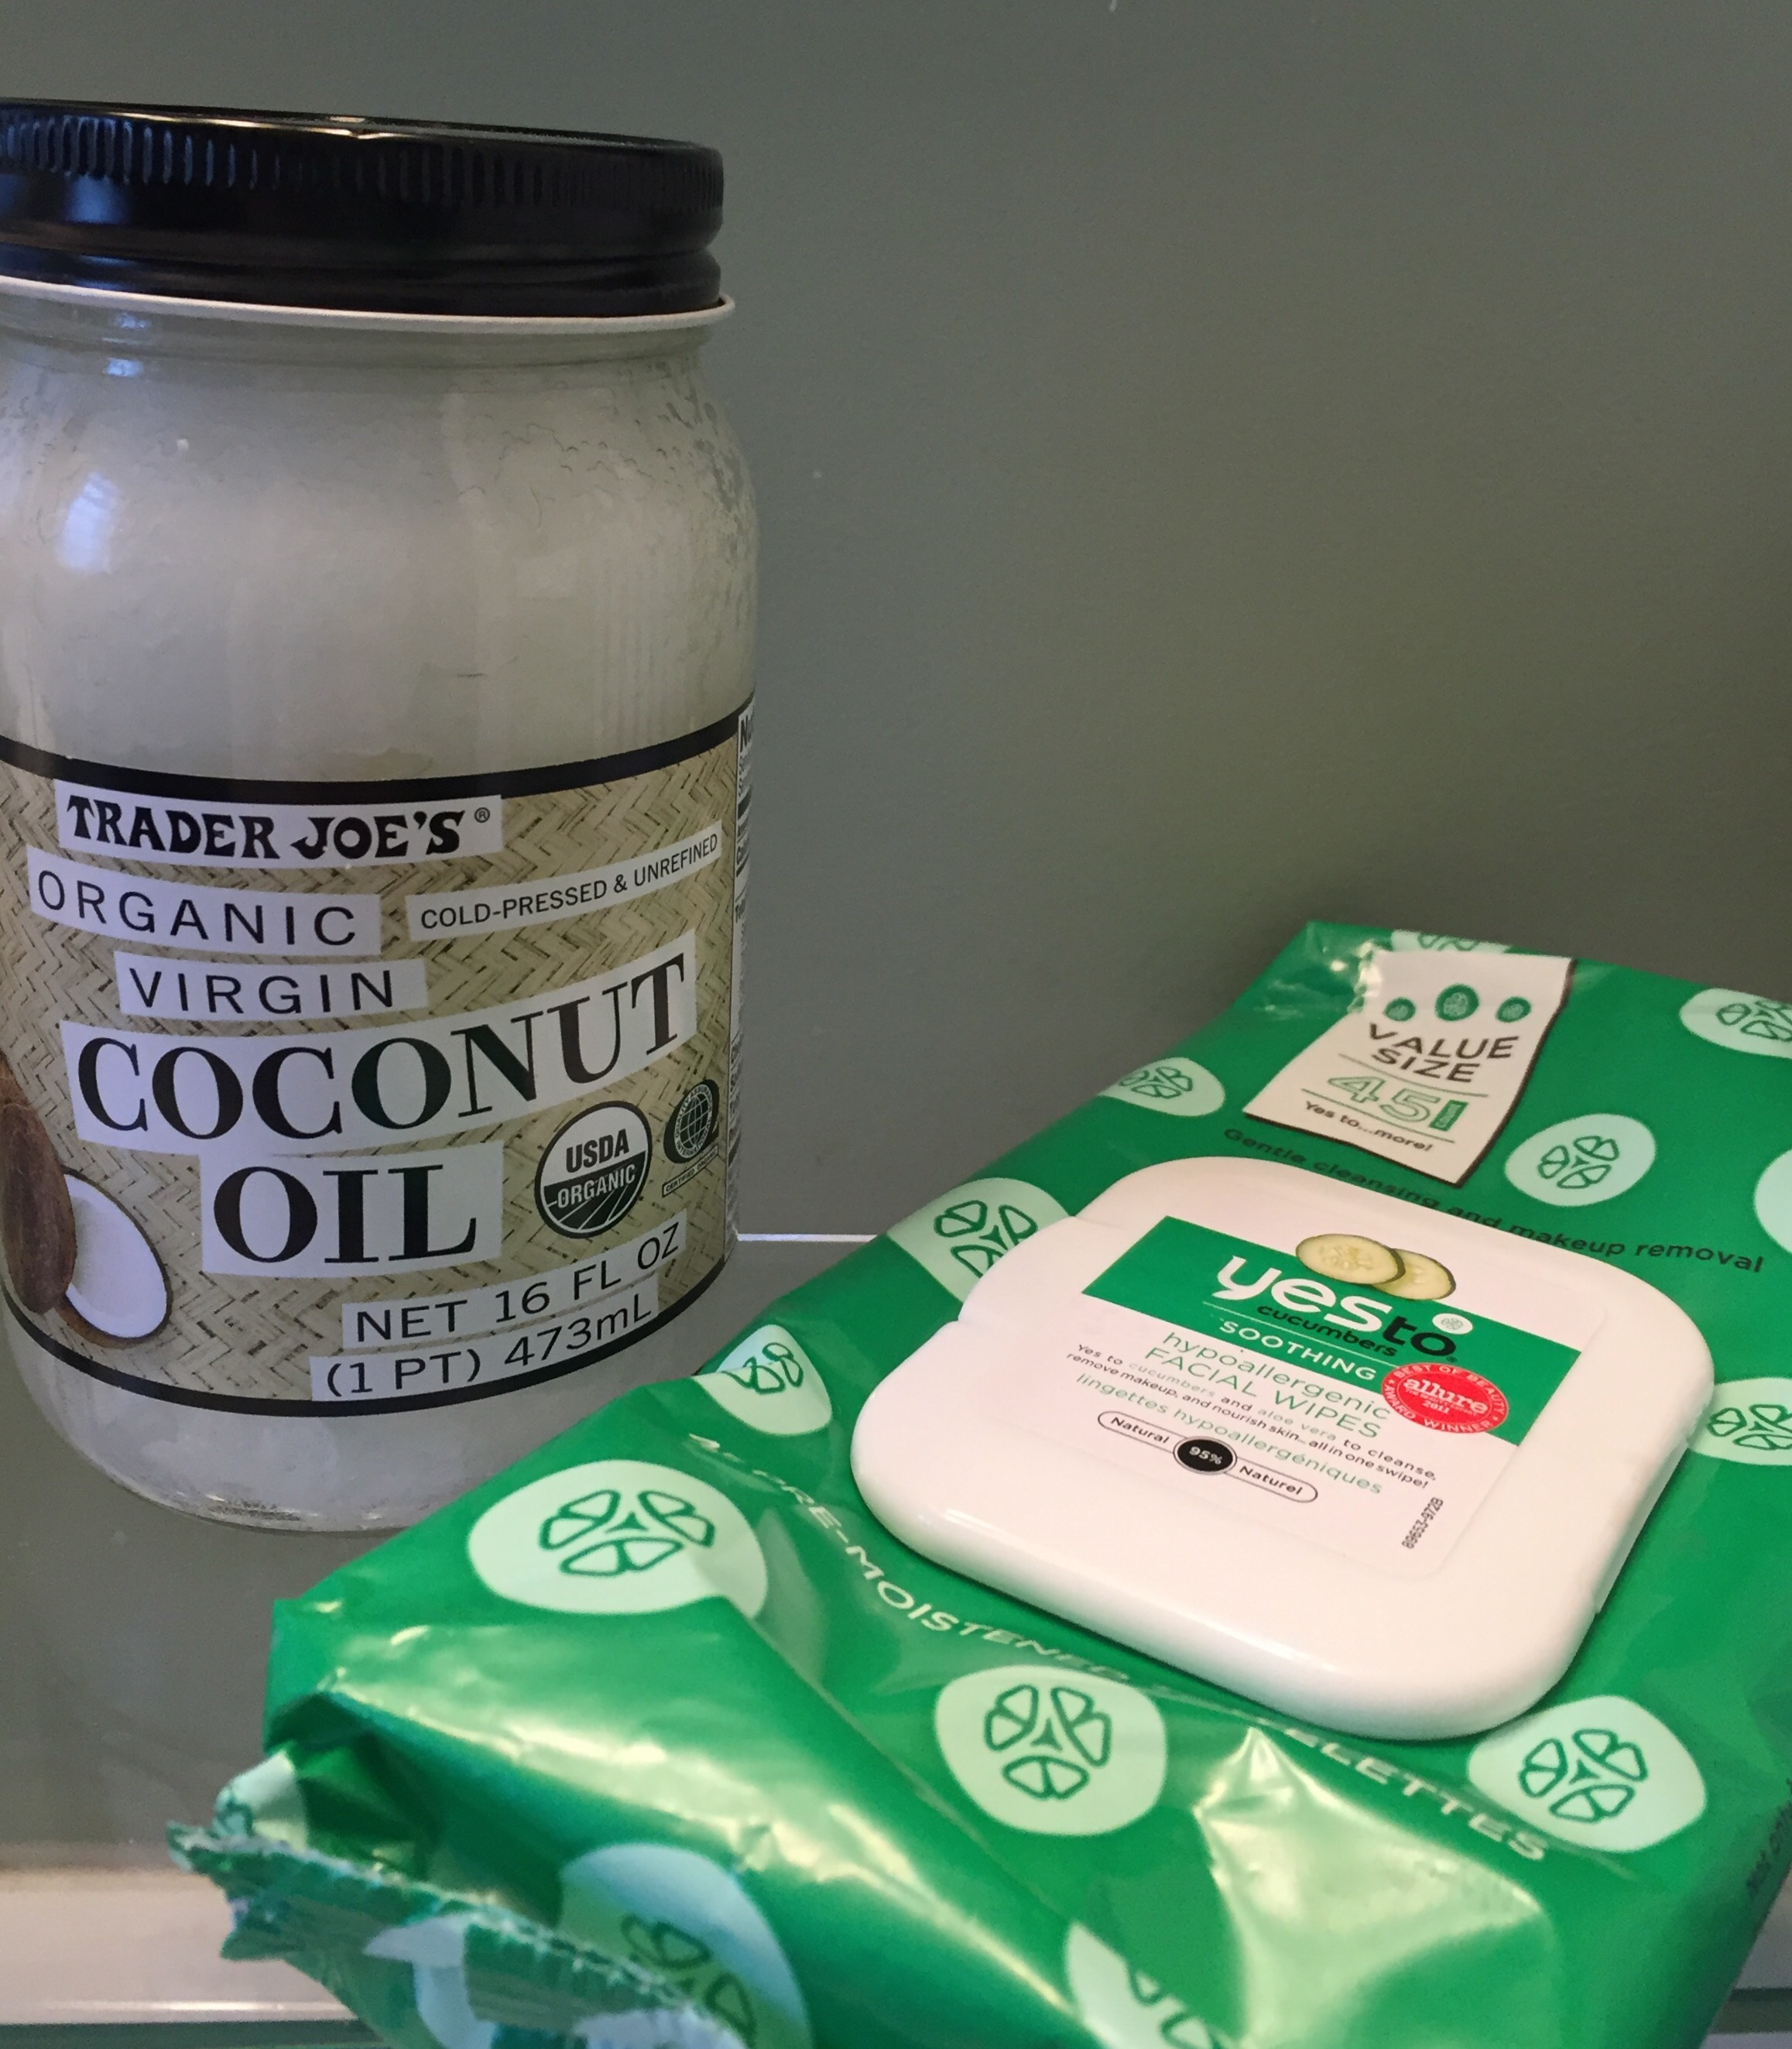 trader joe's, coconut oil, yes to carrots